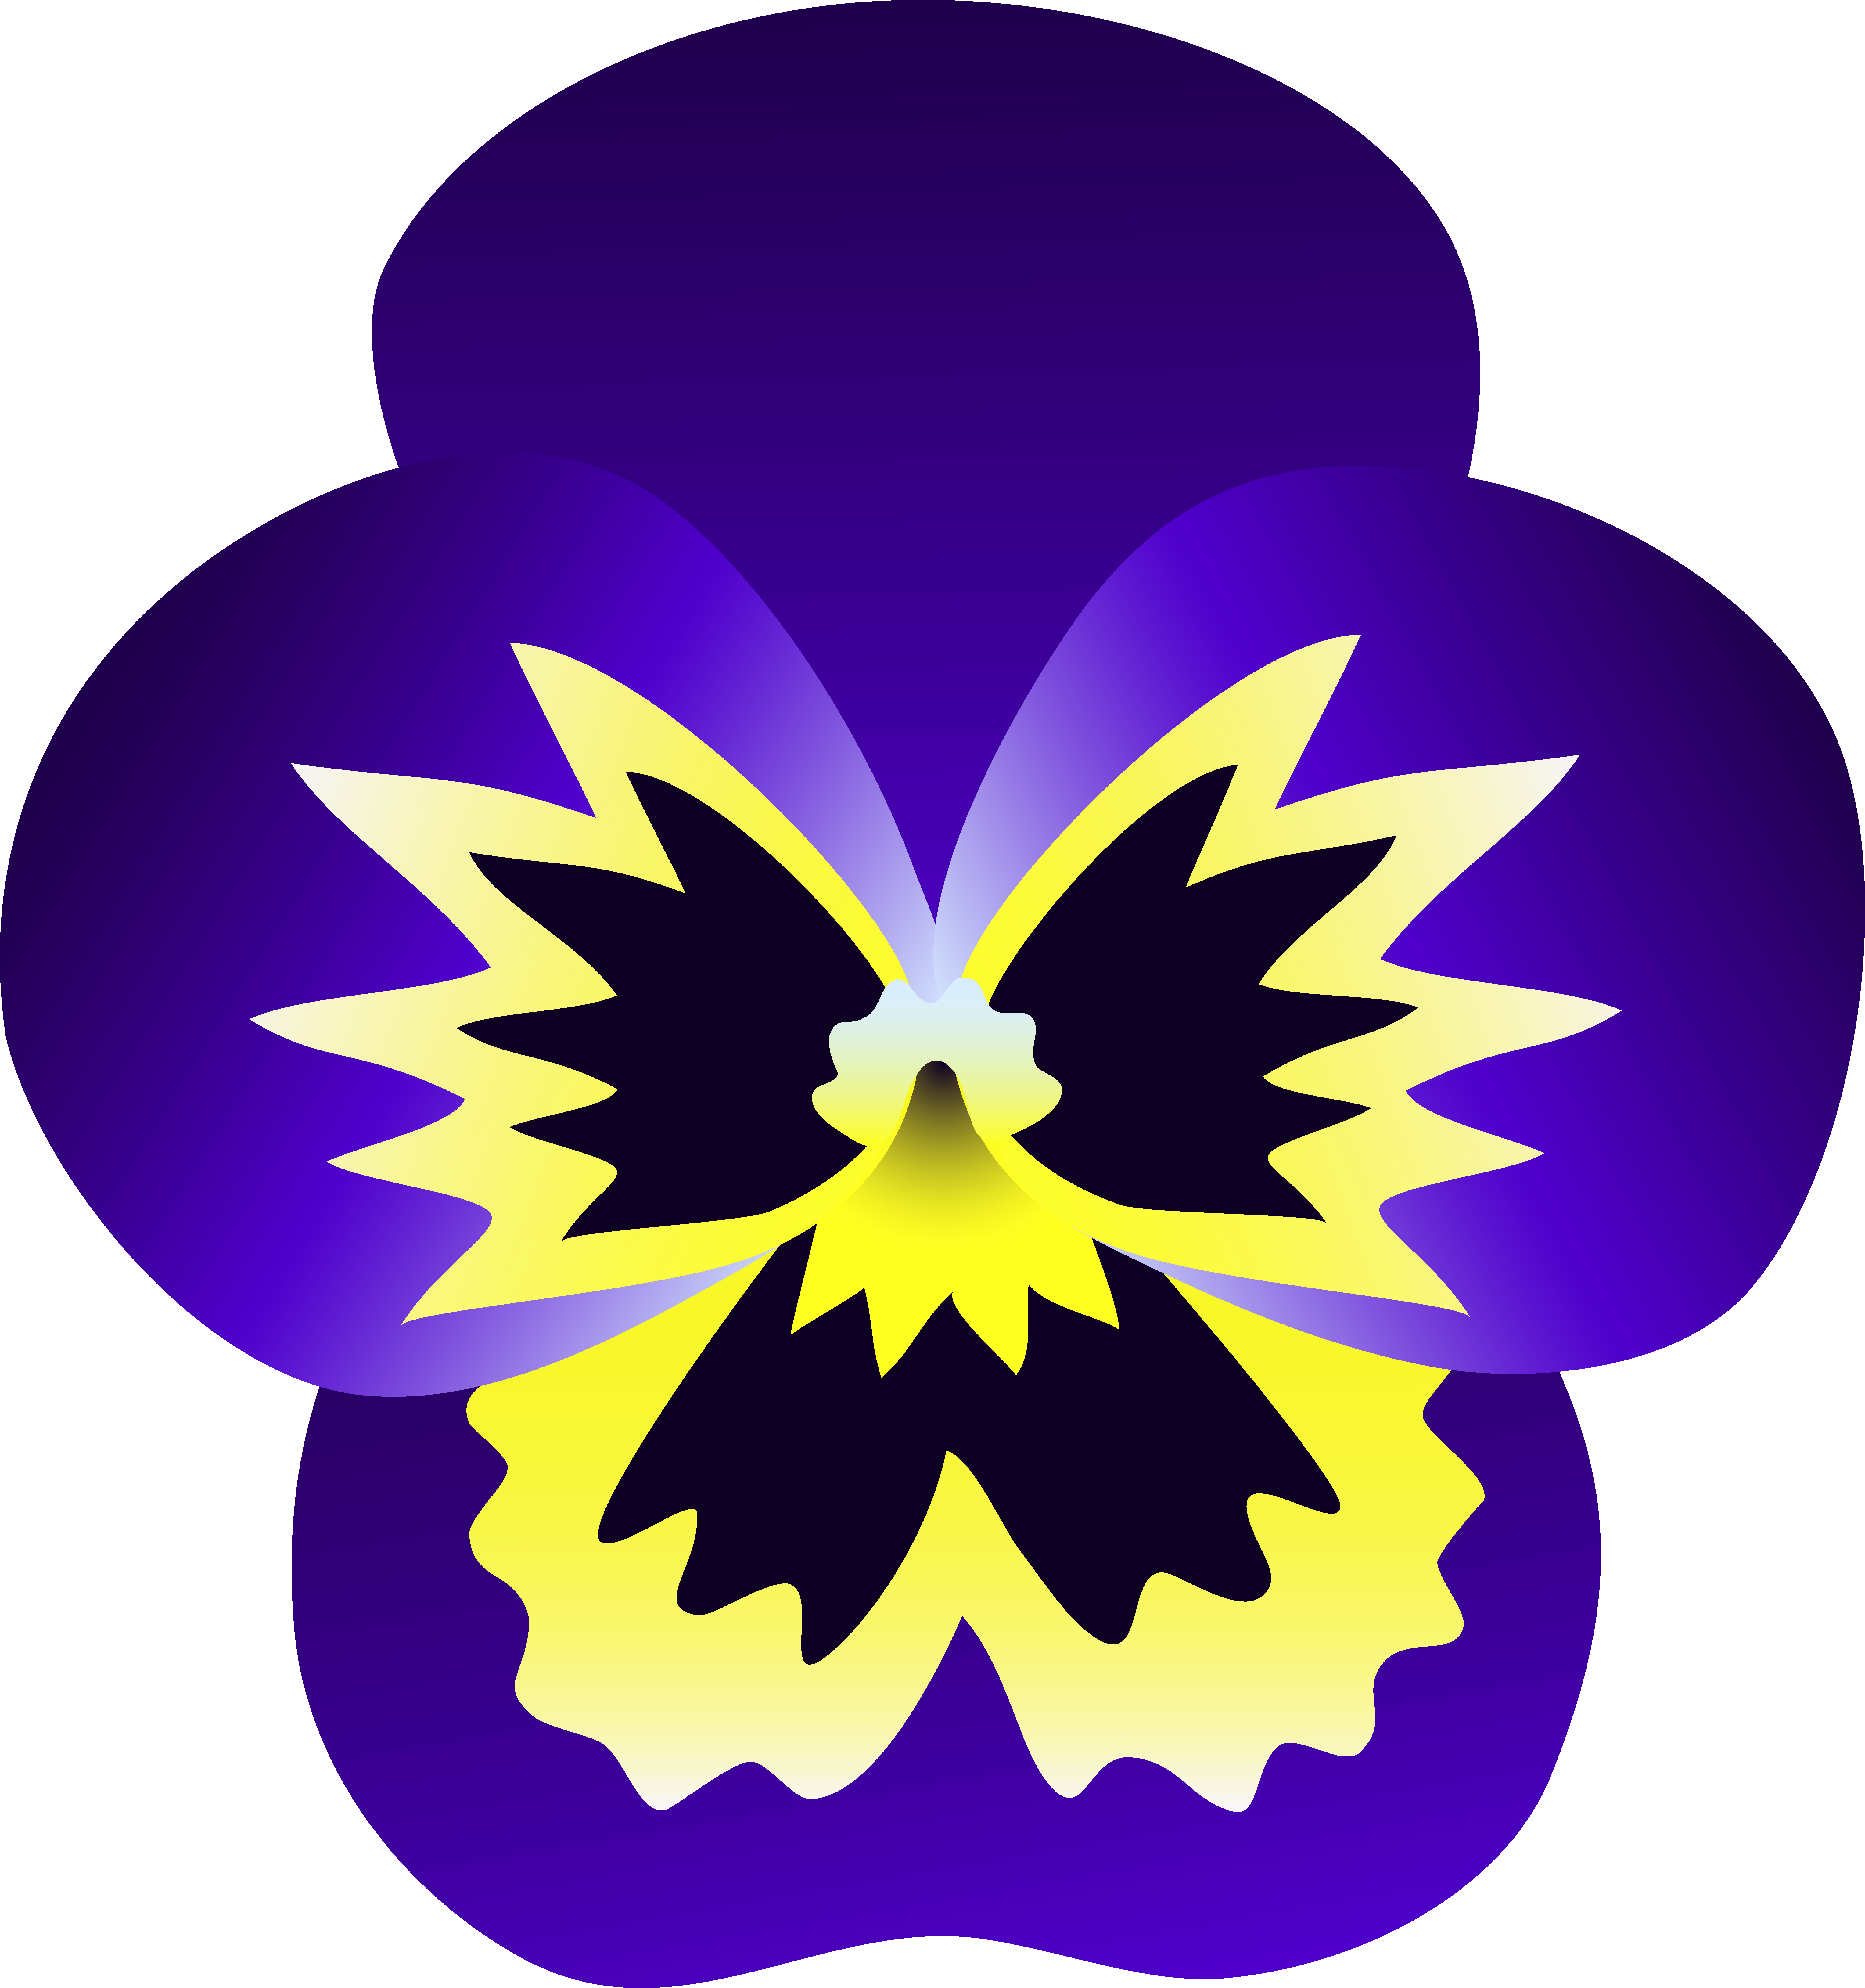 Flowers free clip art clip art free download Purple and Yellow Pansy Flower - Free Clip Art clip art free download